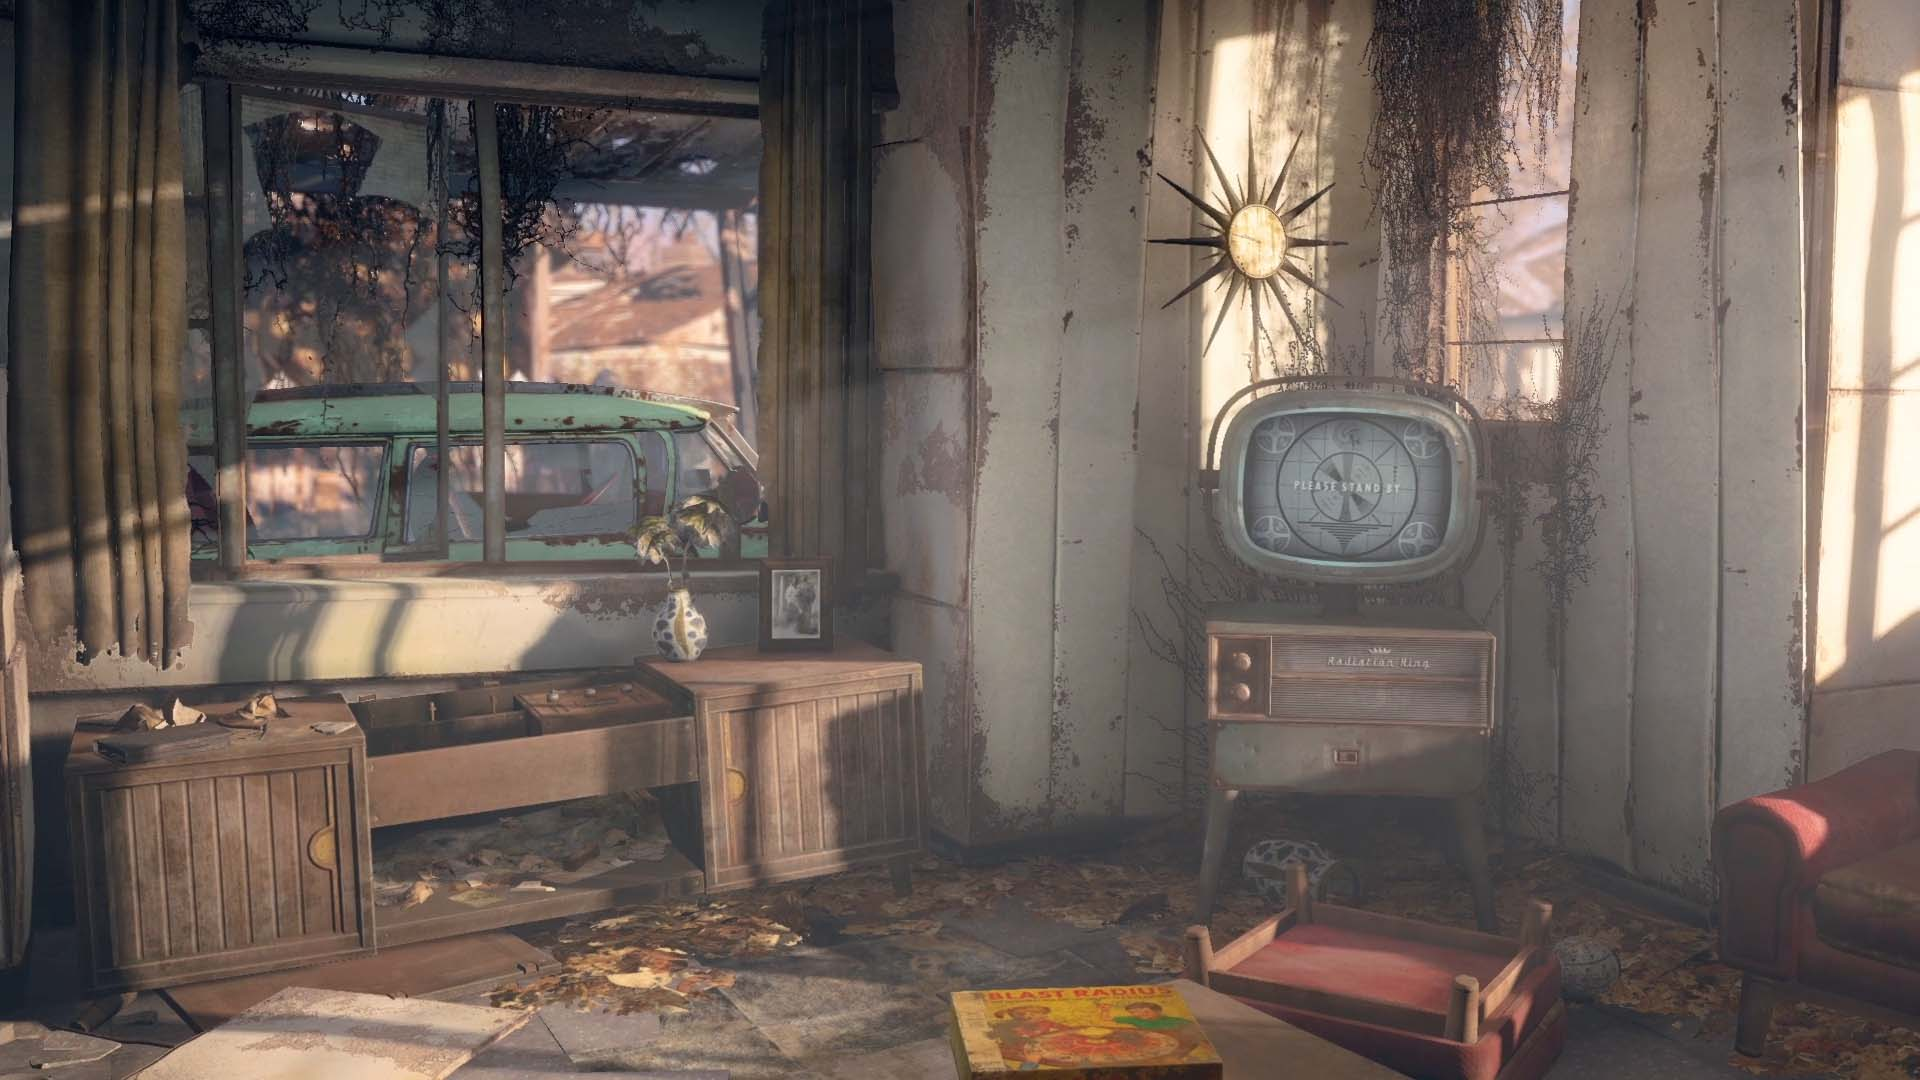 Fallout 4 screenshot comparison with fallout 3 side by side for Fallout 4 decorations